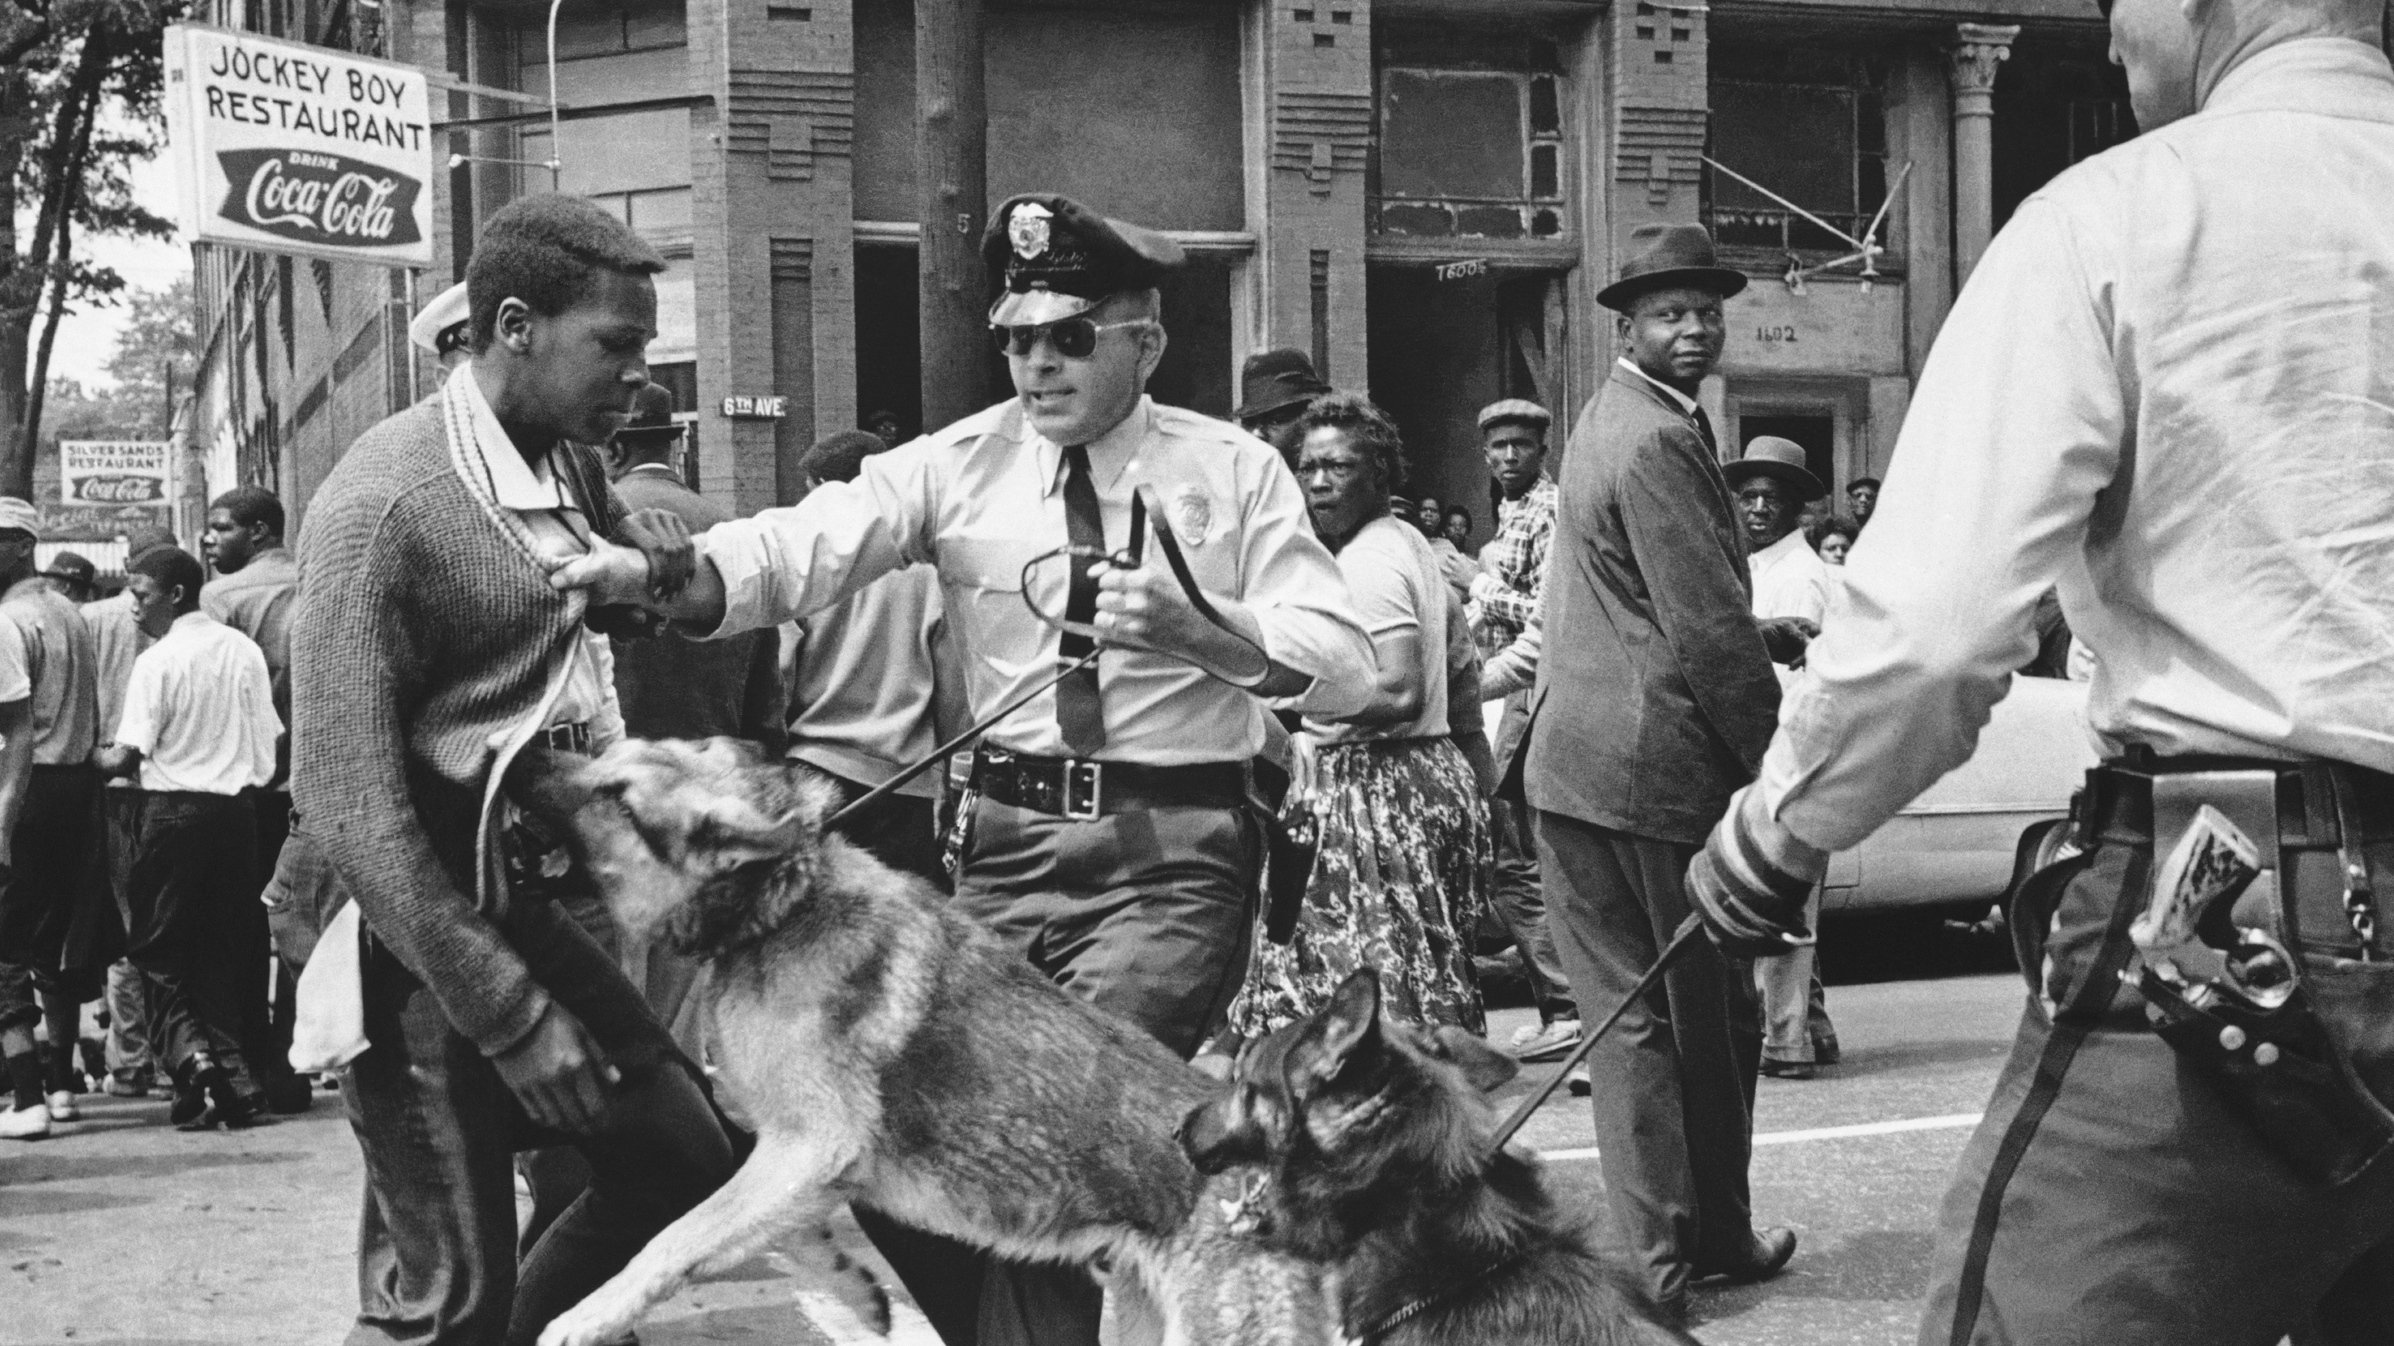 How The Civil Rights Movement Was Covered In Birmingham  Code Switch  NPR & How The Civil Rights Movement Was Covered In Birmingham : Code ...